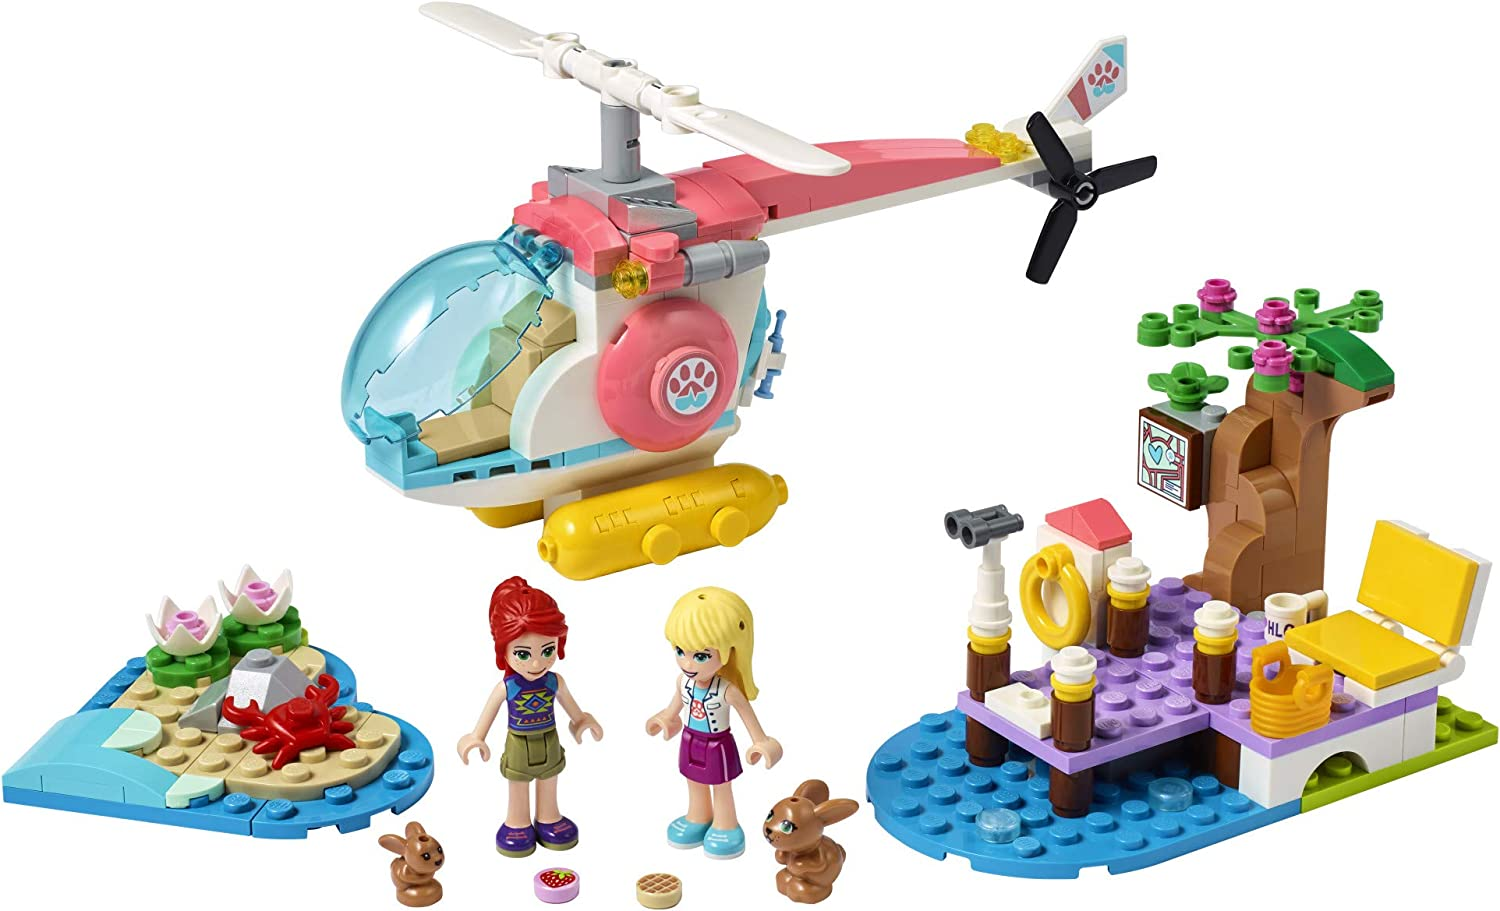 249 Pieces New 2021 LEGO Friends Vet Clinic Rescue Helicopter 41692 Building Kit; Makes Great Birthday for Kids